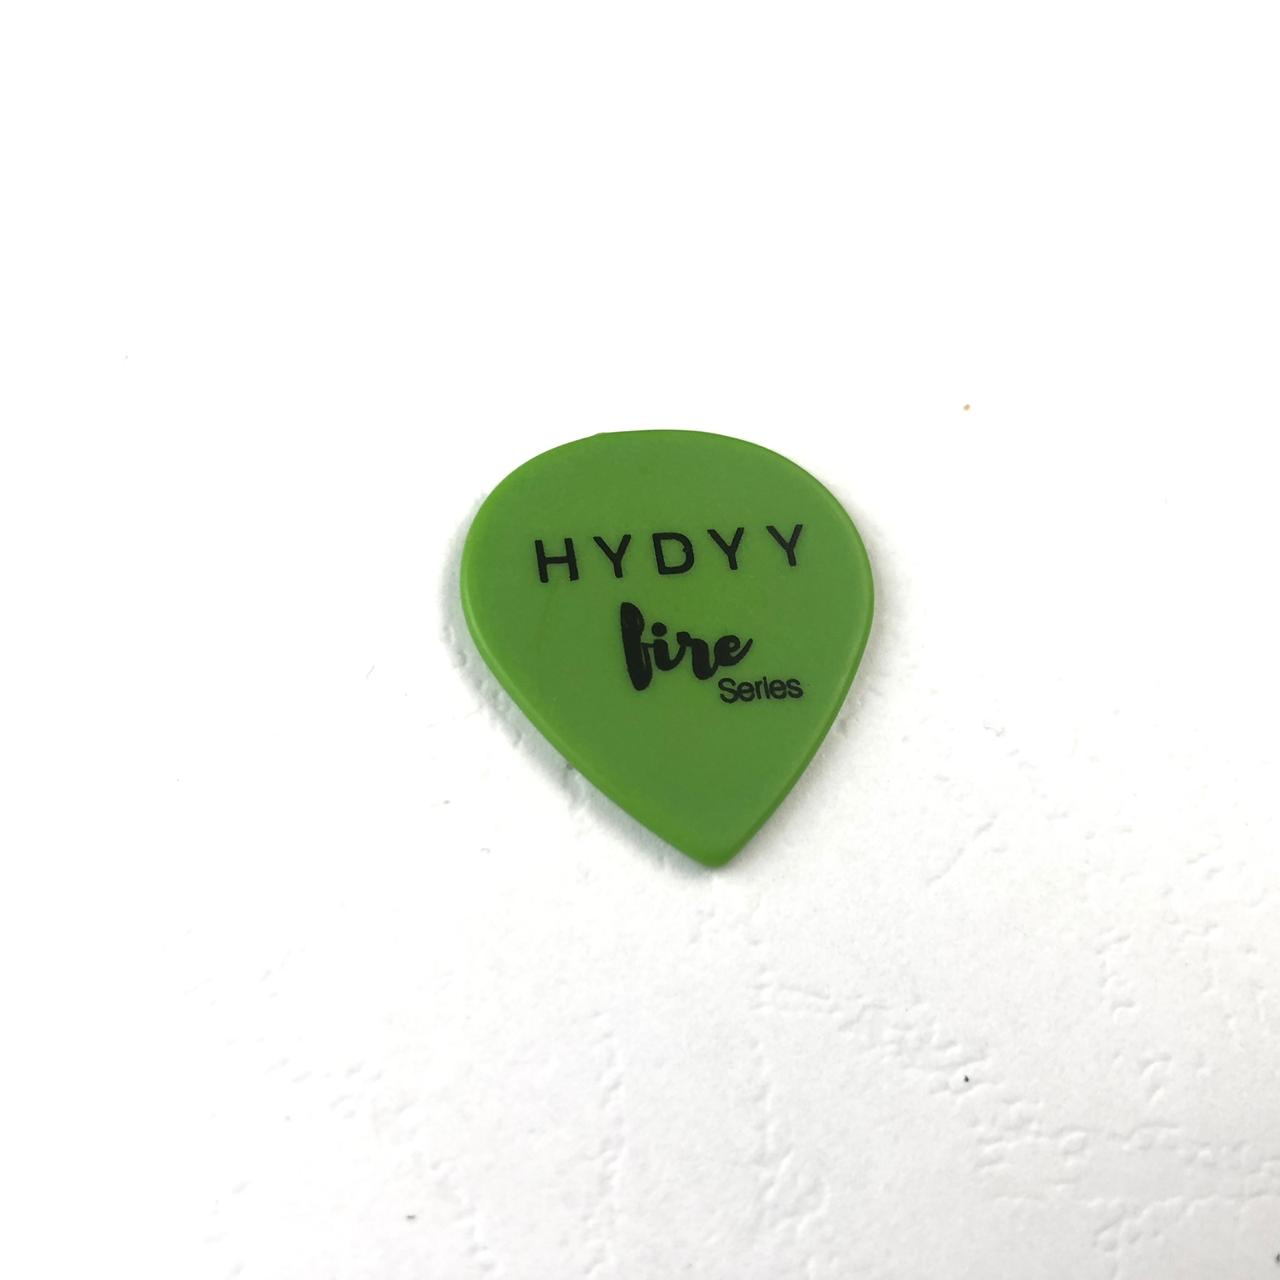 HYDYY Fire Series Delrin Guitar Picks in dubai